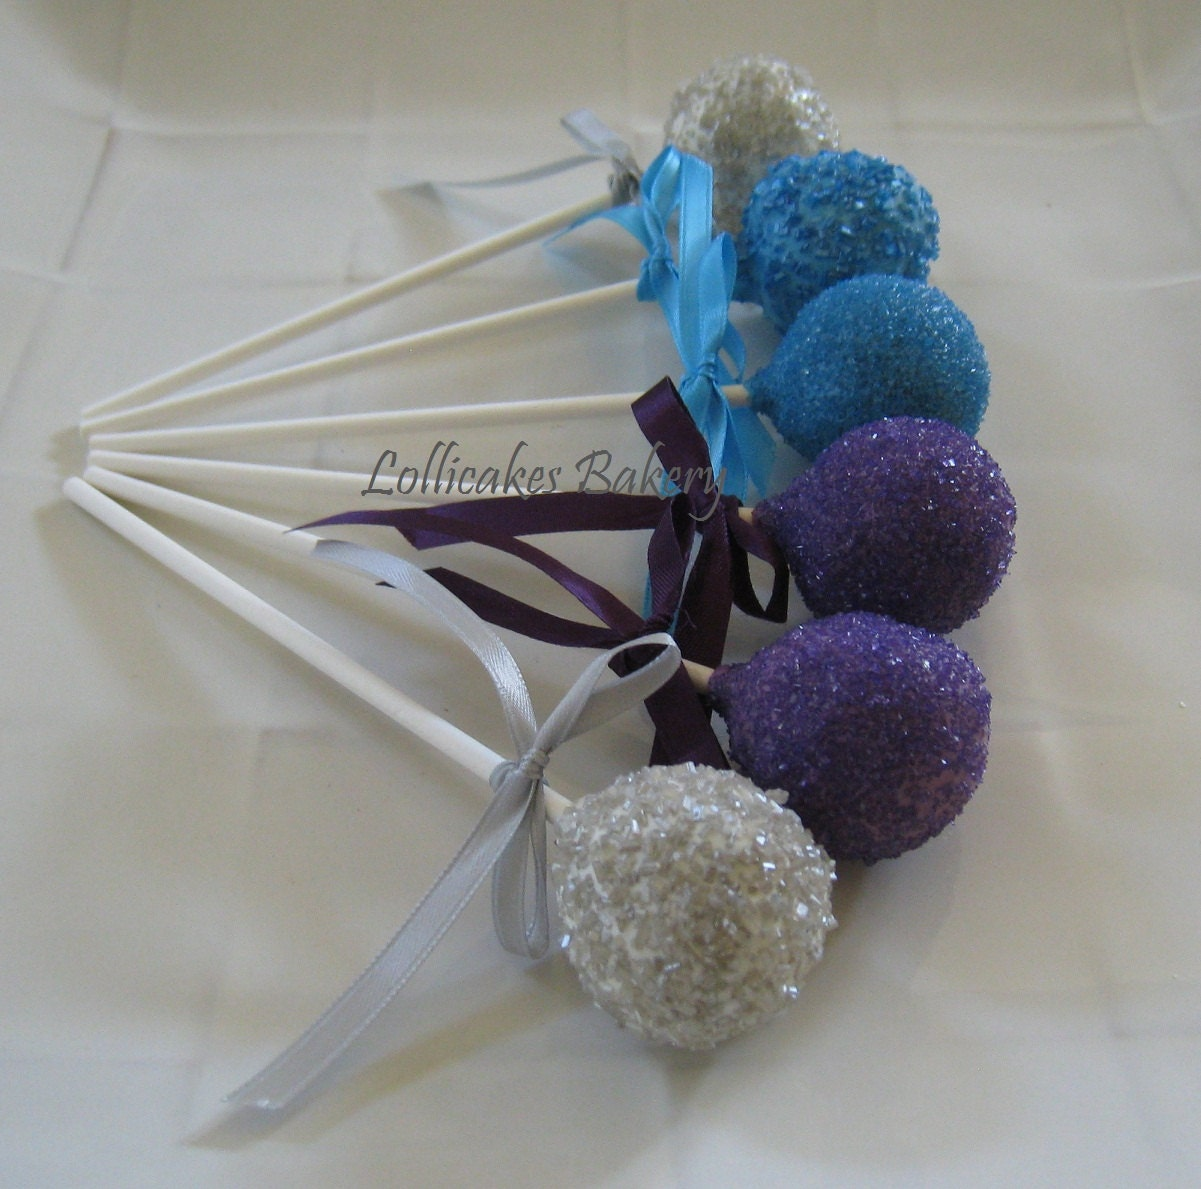 Cake Pops: Birthday Cake Pops Made to Order with High Quality